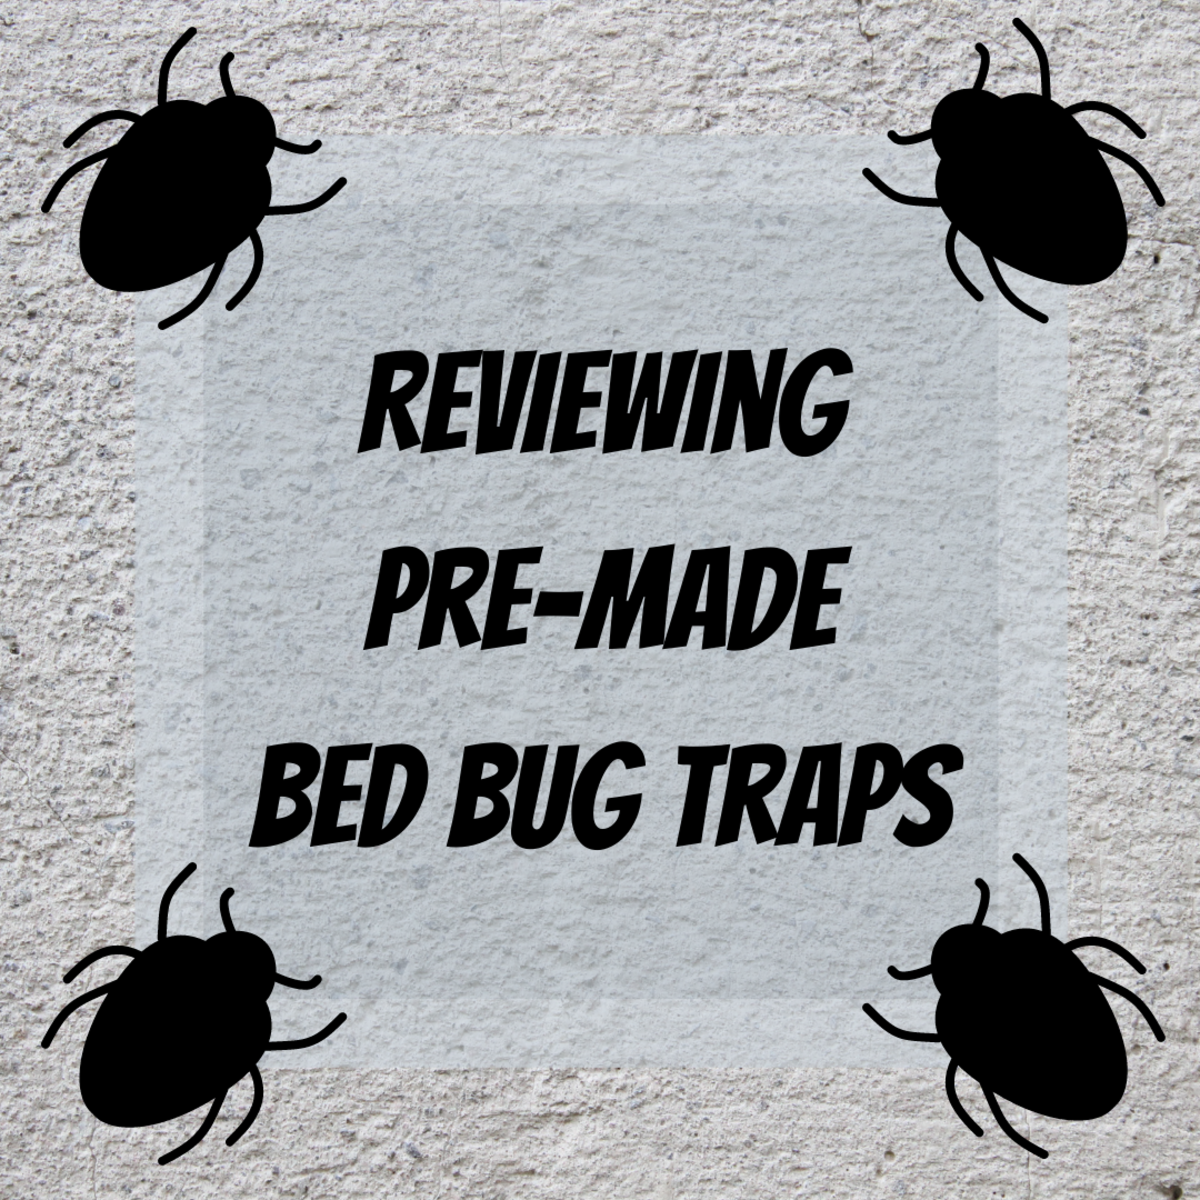 Learn about BuggyBed and Expel bug traps, including info on their effectiveness and a comparison of the brands. Further DIY trap info is also included.